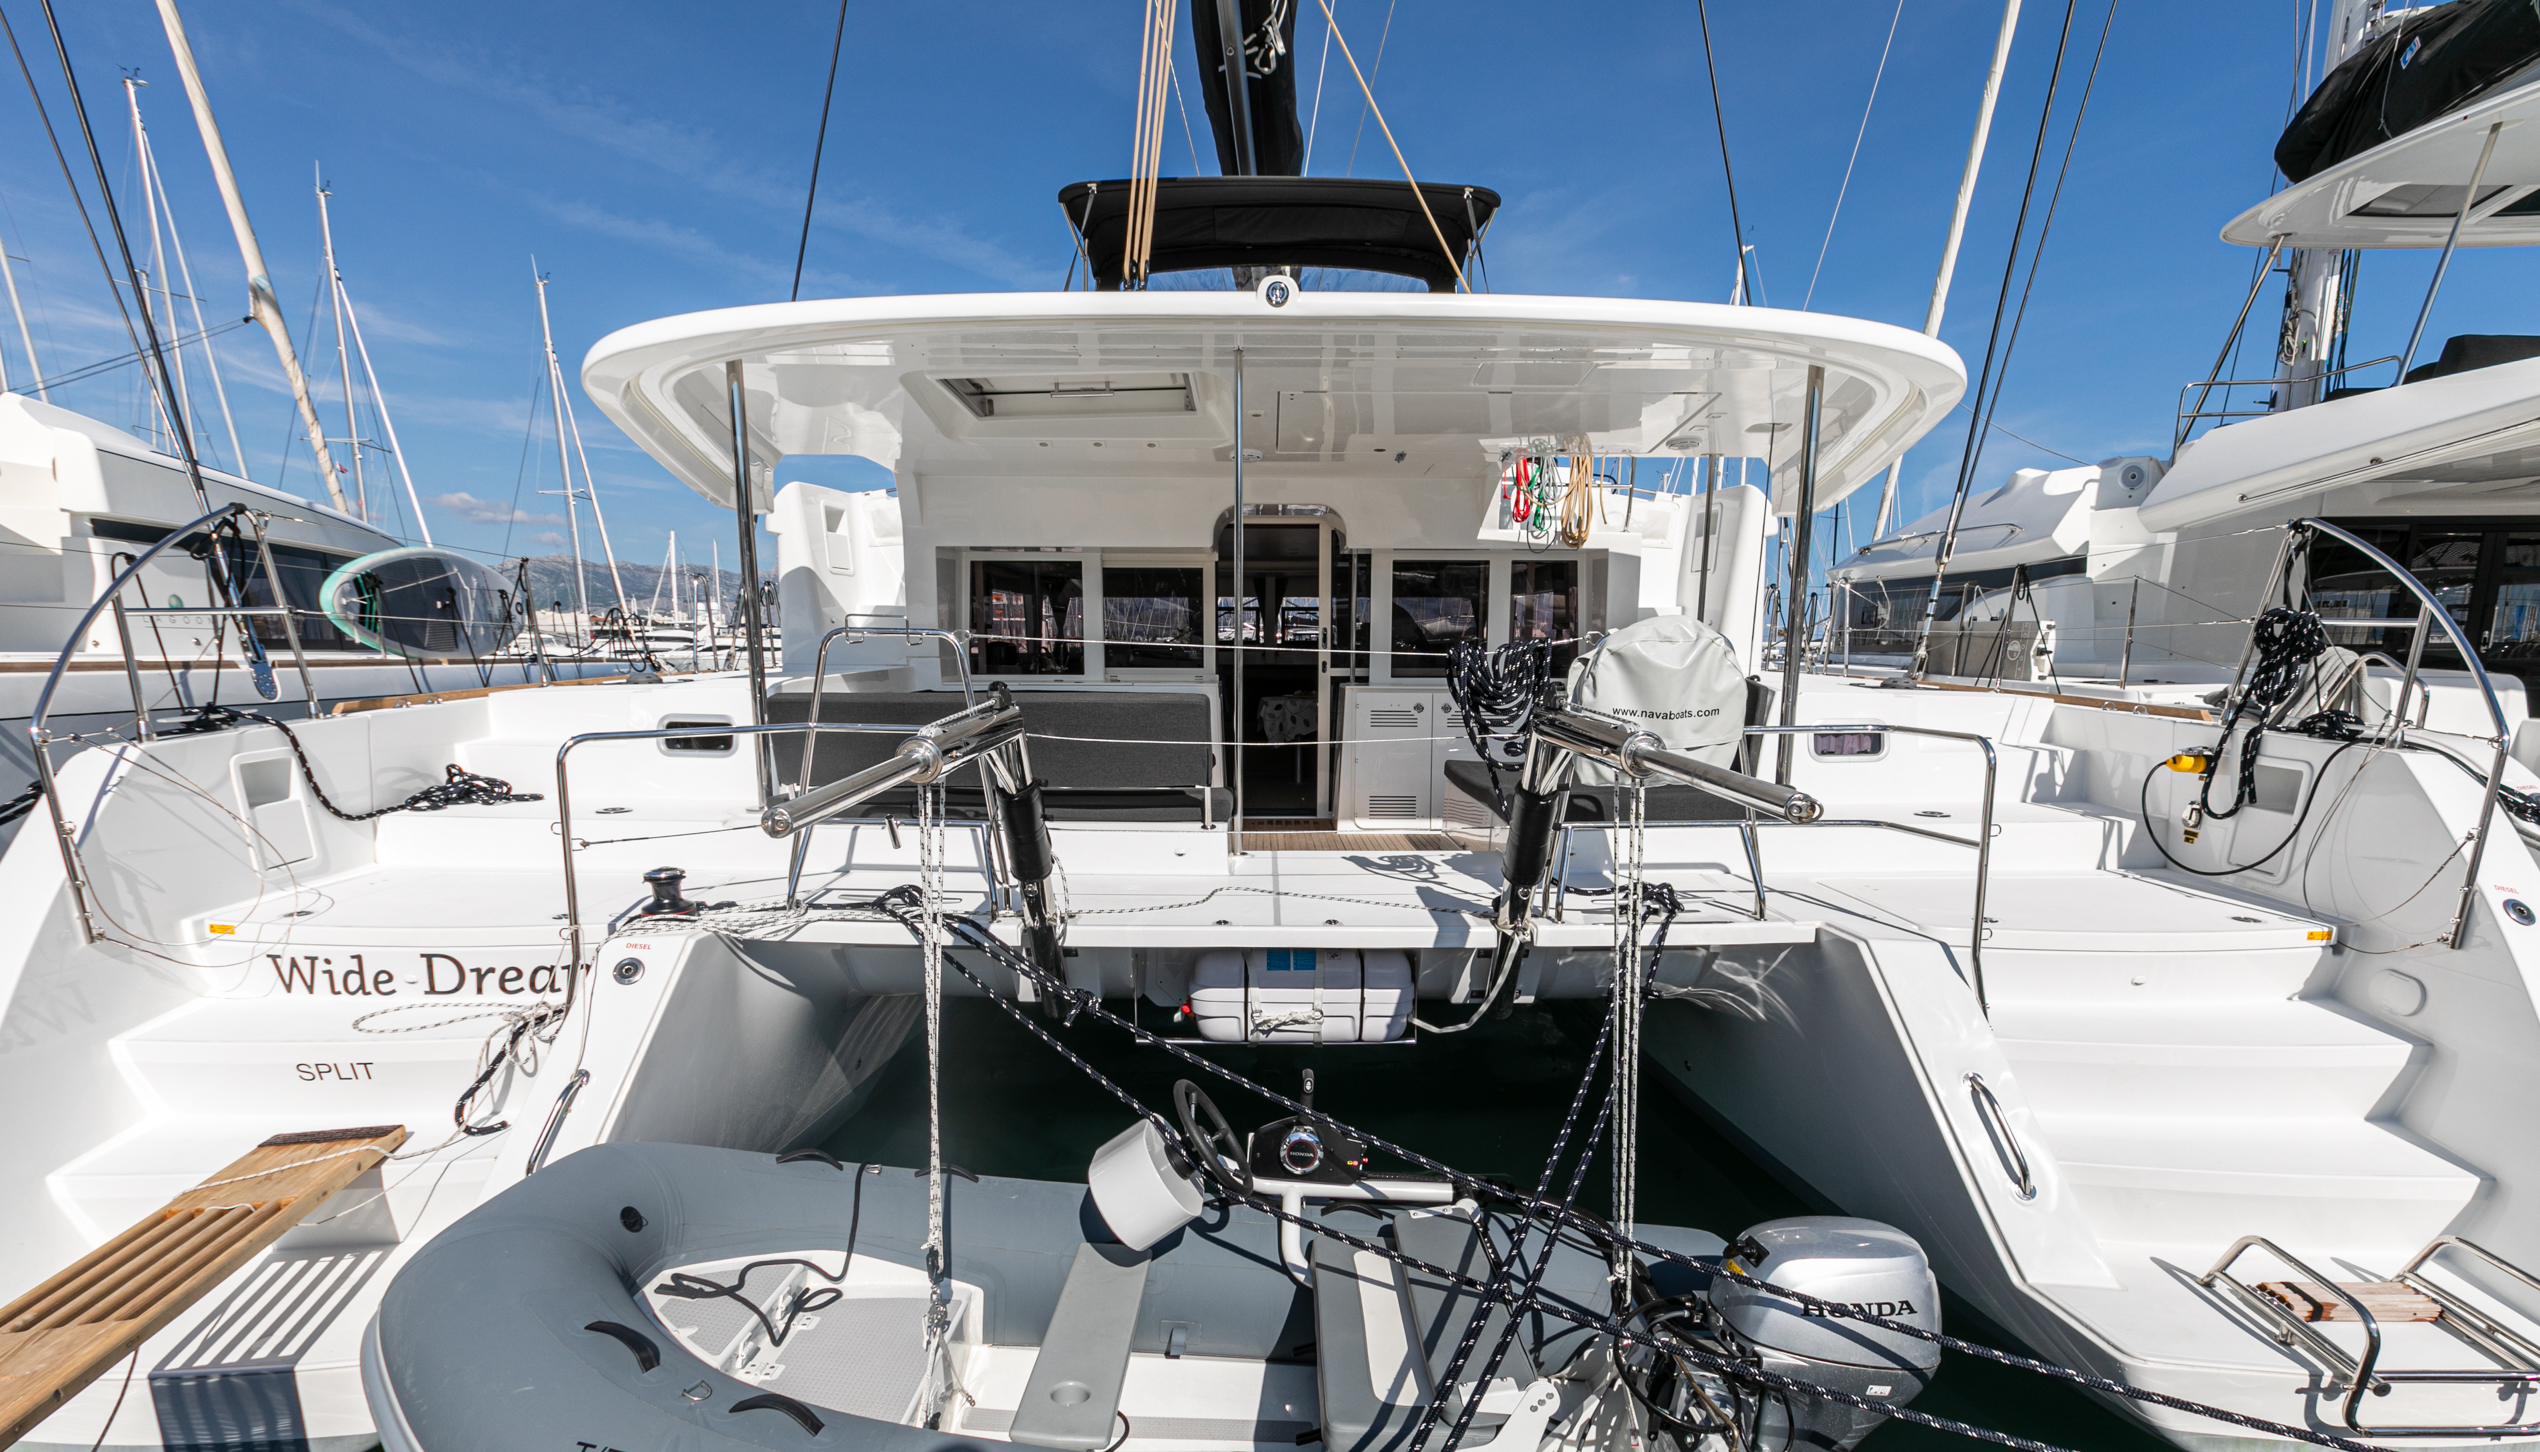 Lagoon 450 F (2019) equipped with generator, A/C ( (WIDE DREAM)  - 15